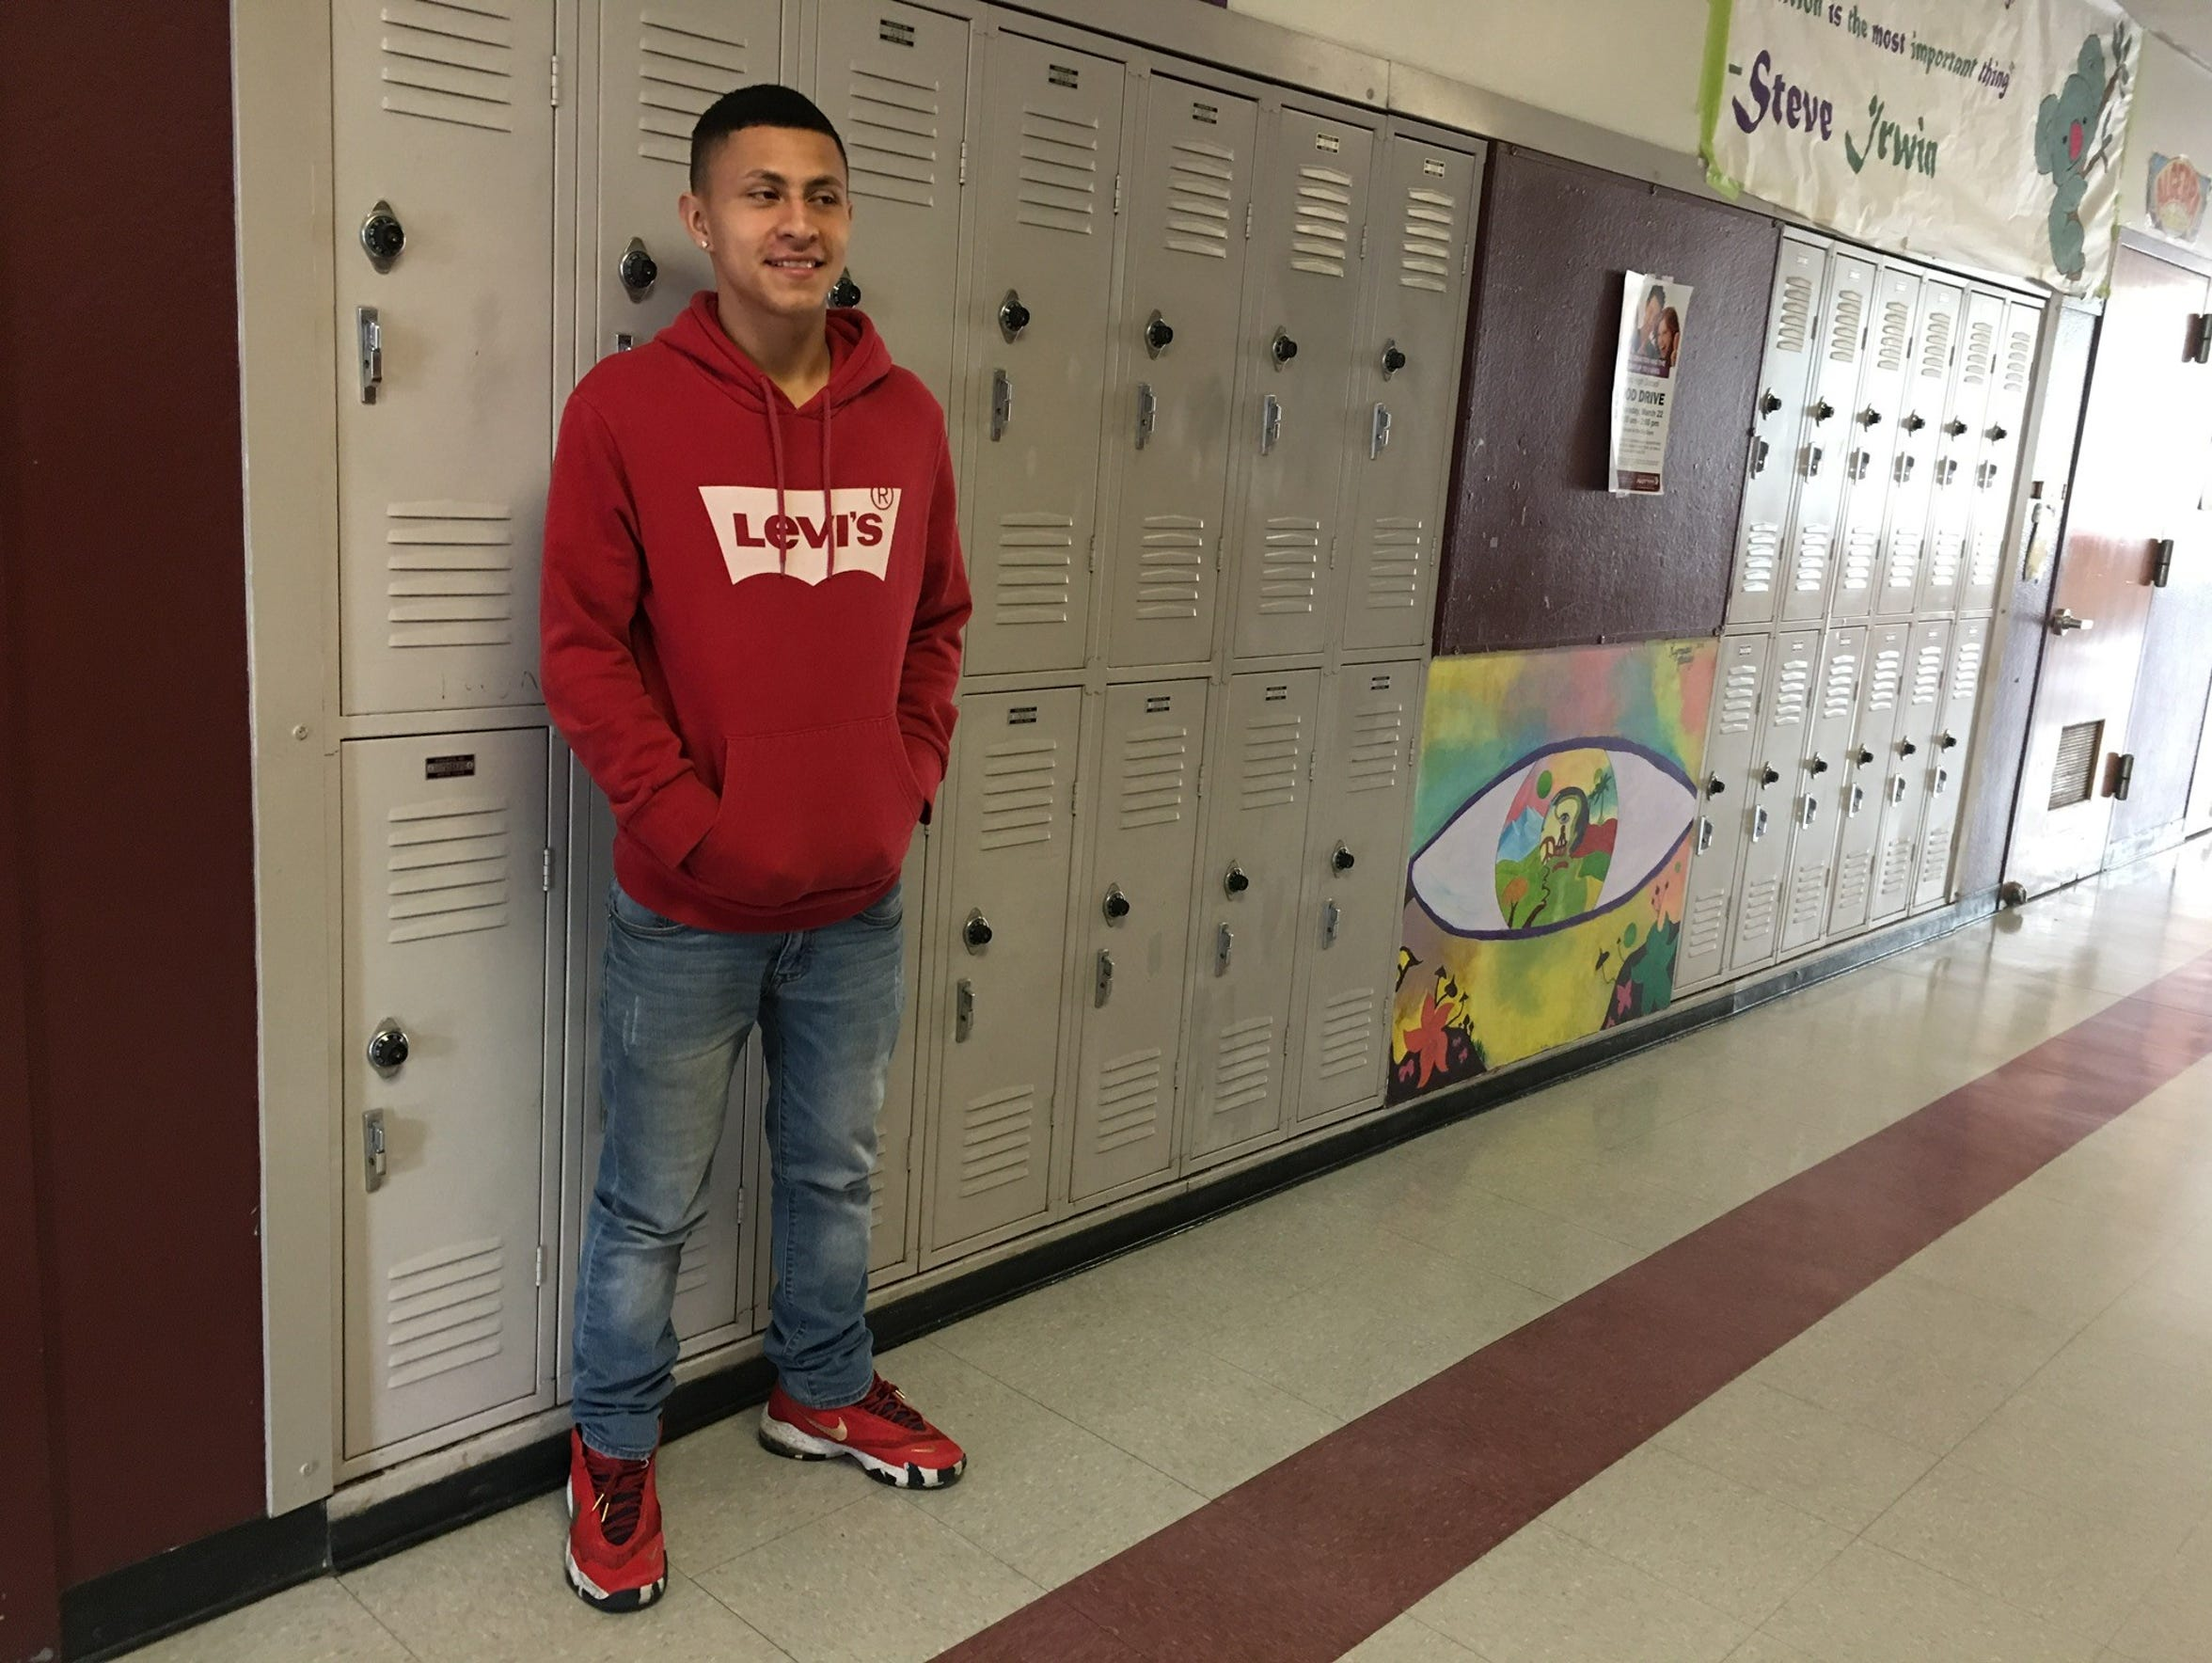 Justin Fuentes, a 2018 Sparks High Graduate, was an eighth-grader in 2013 when a classmate brought a gun to Sparks Middle School and shot and killed a teacher, shot and injured two students and killed himself.